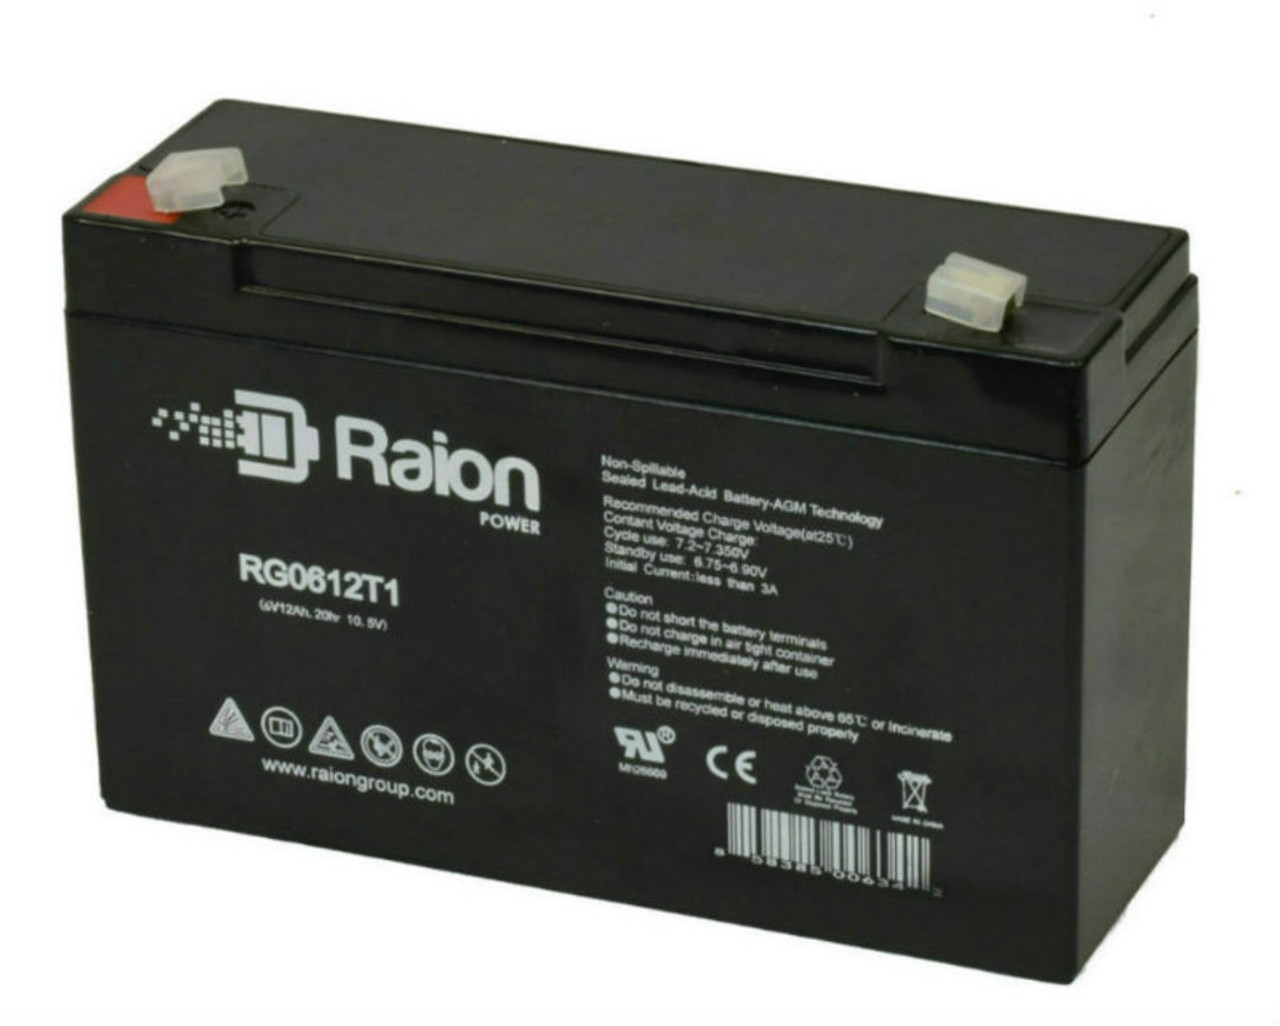 Raion Power RG06120T1 Replacement Battery Pack for Dynaray DR593 emergency light